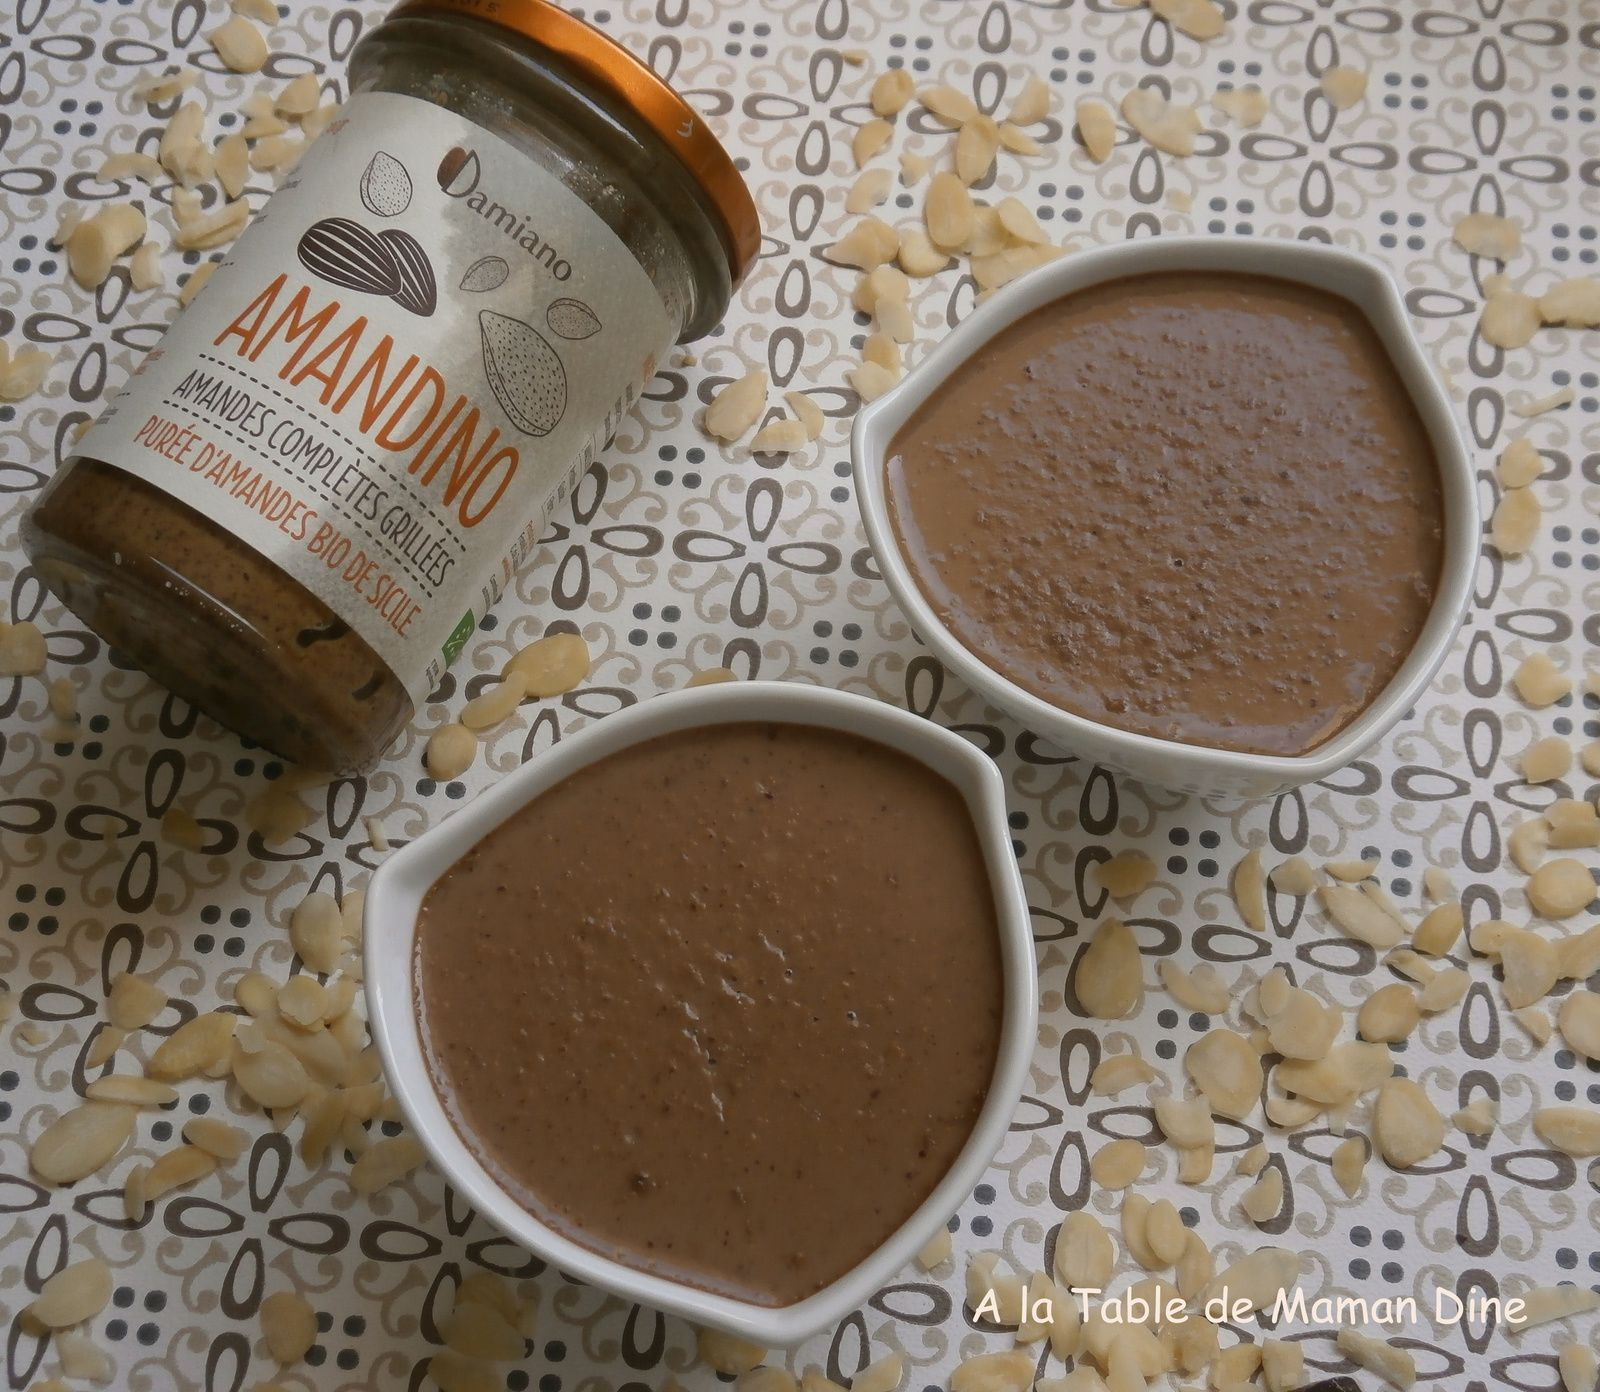 P'tits pots chocolat Nutella by Dorian ~version sans lactose &amp&#x3B; avec un petit quelque chose de plus ~